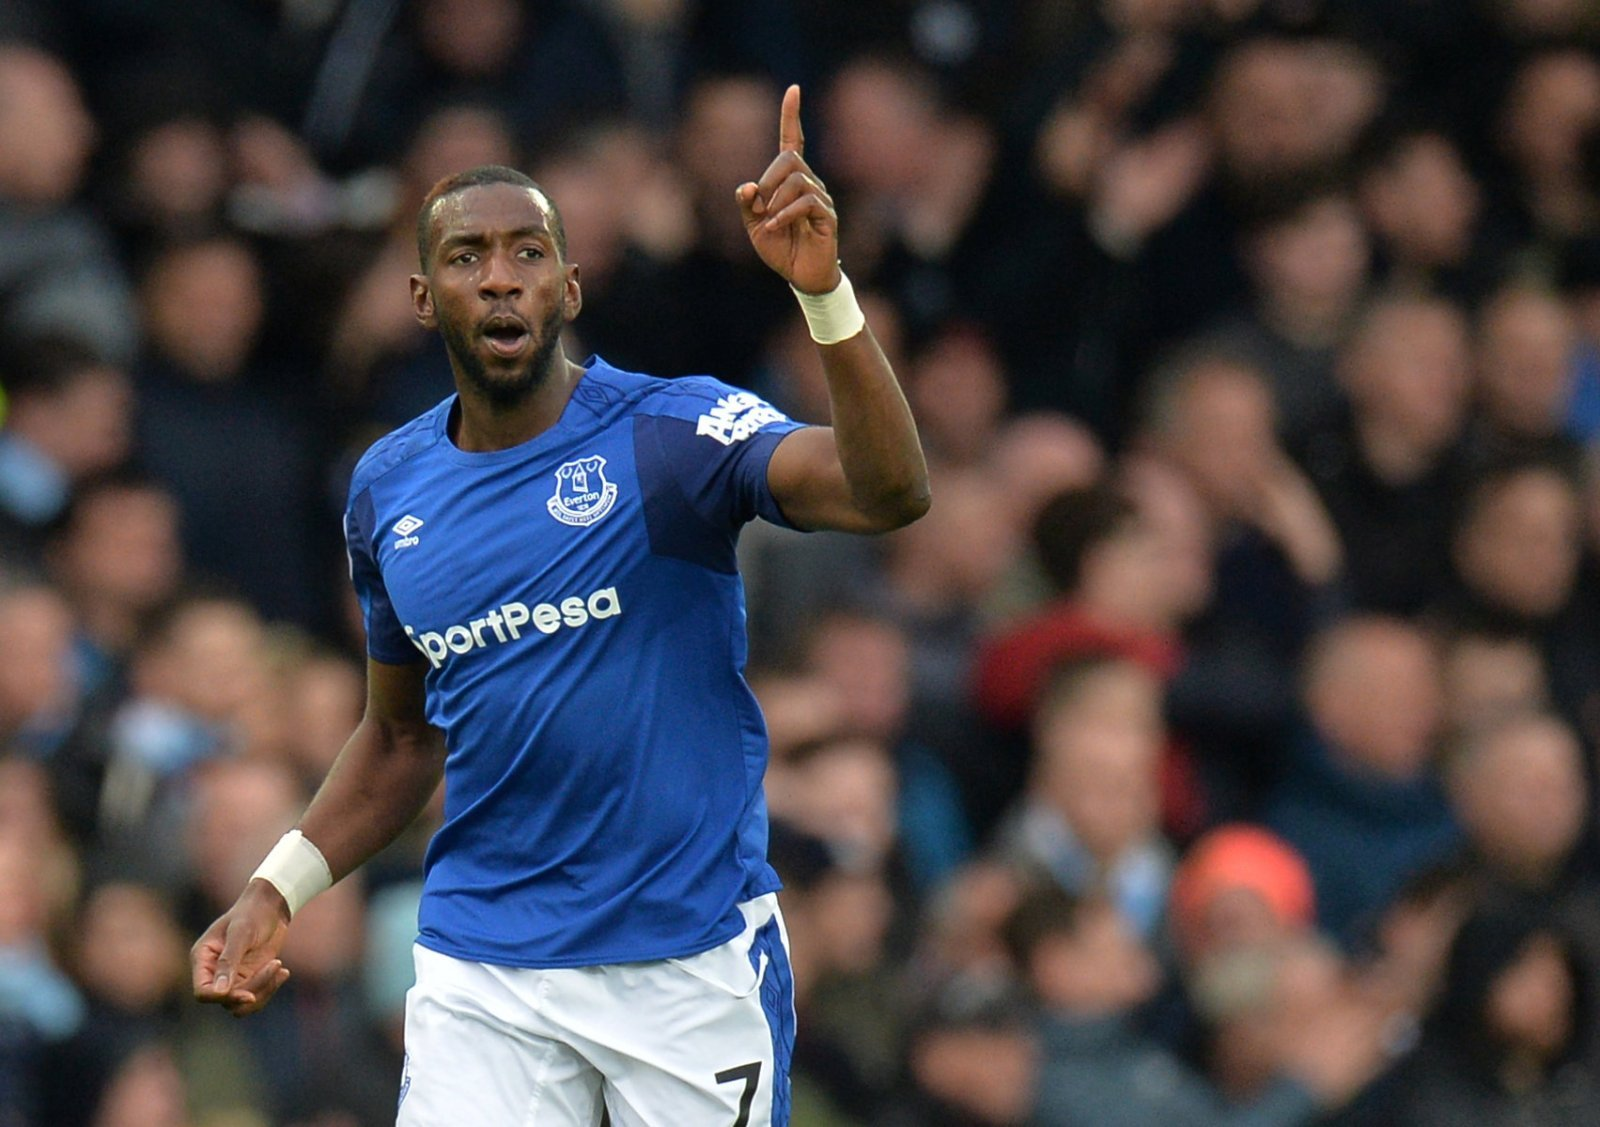 Everton fans on Twitter keen to see Bolasie return to Crystal Palace